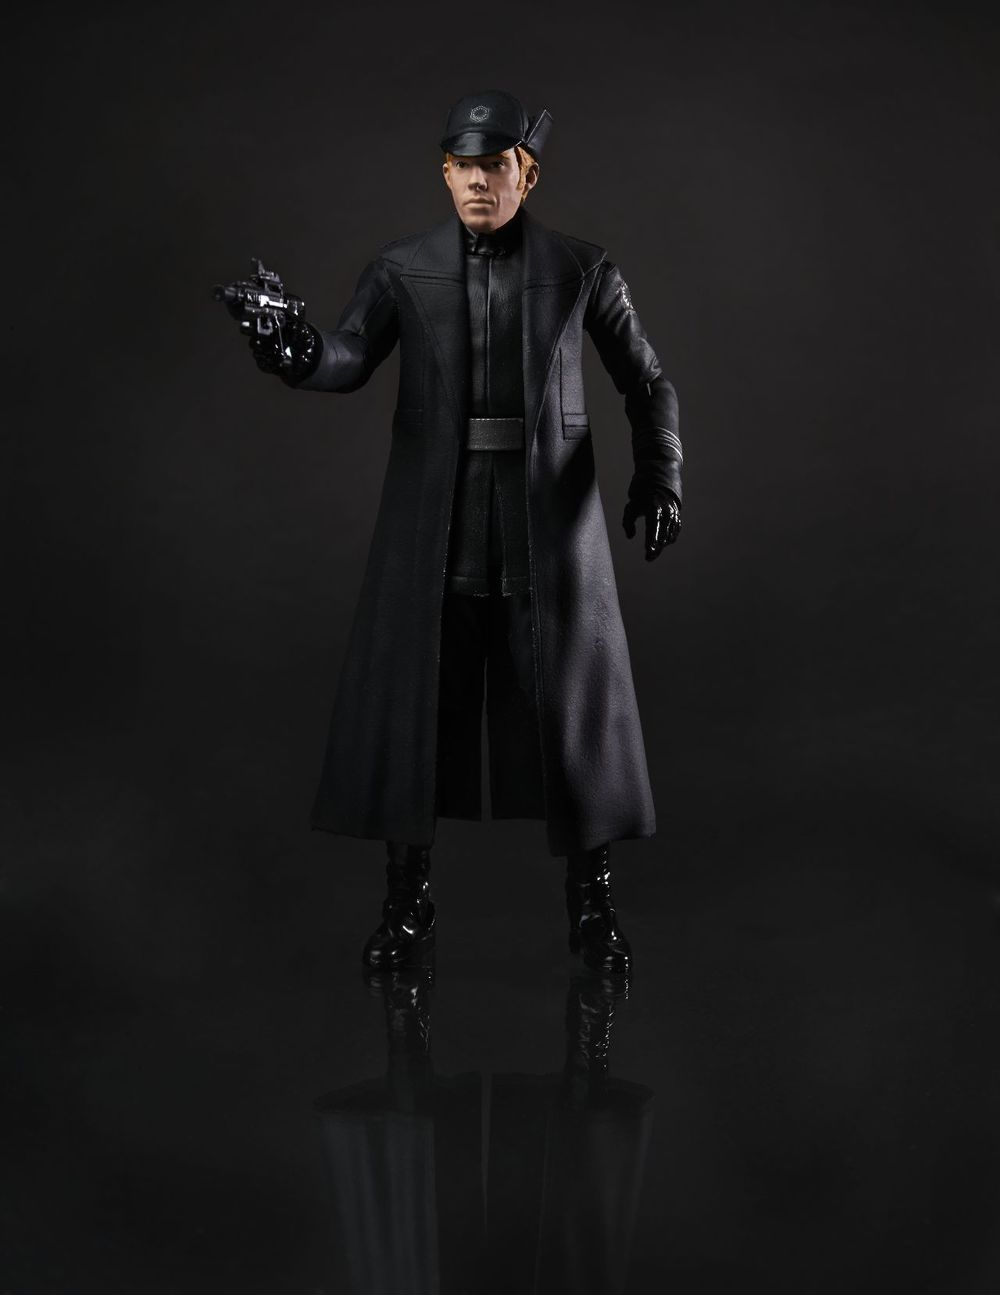 new-star-wars-the-force-awakens-action-figures-revealed-including-han-solo7